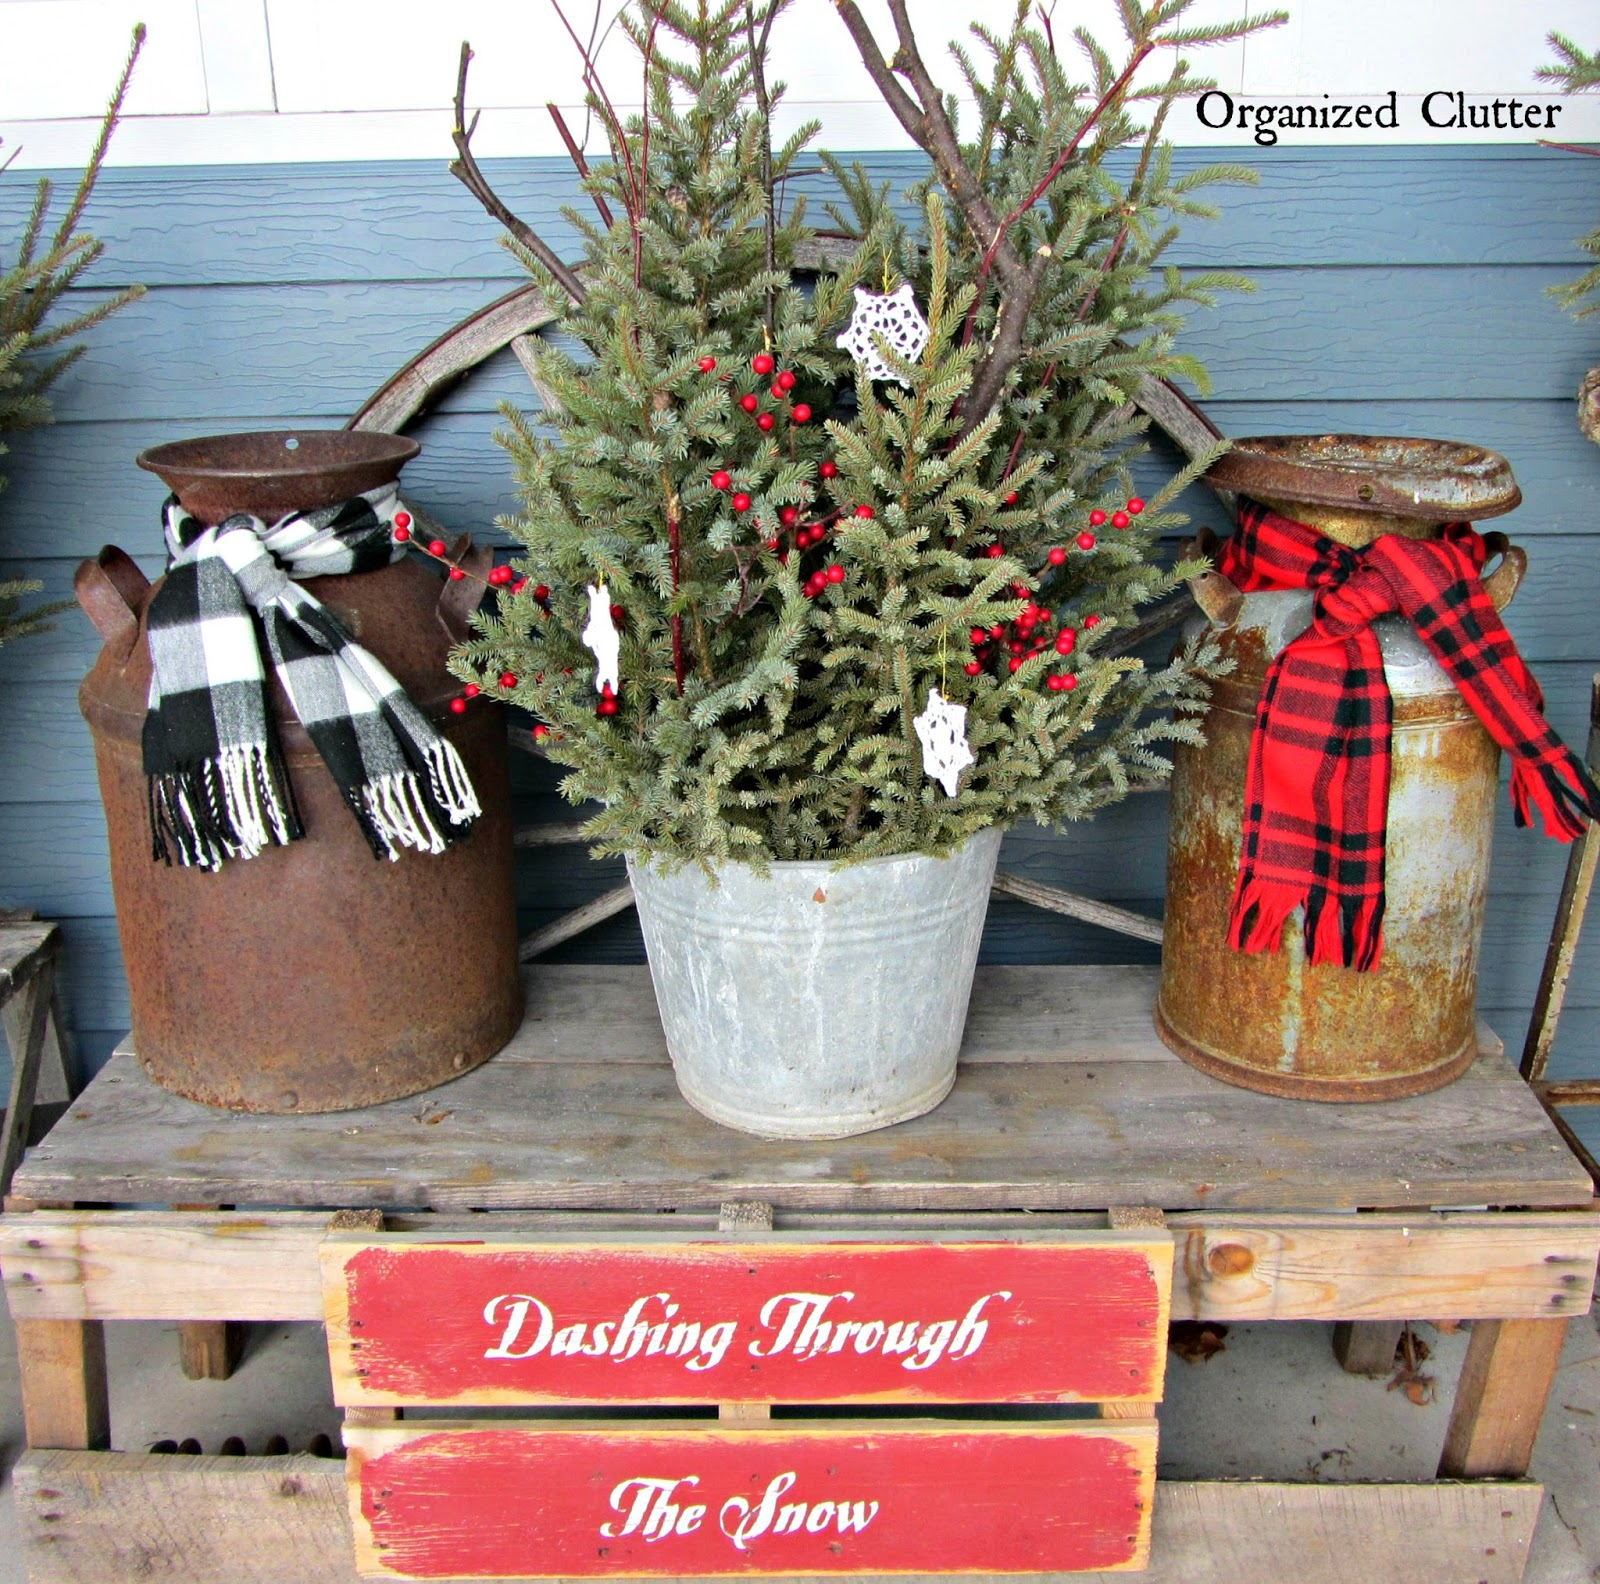 Pails, Milk Cans, Weathered Wood & Christmas Greenery www.organizeclutterqueen.blogspot.com